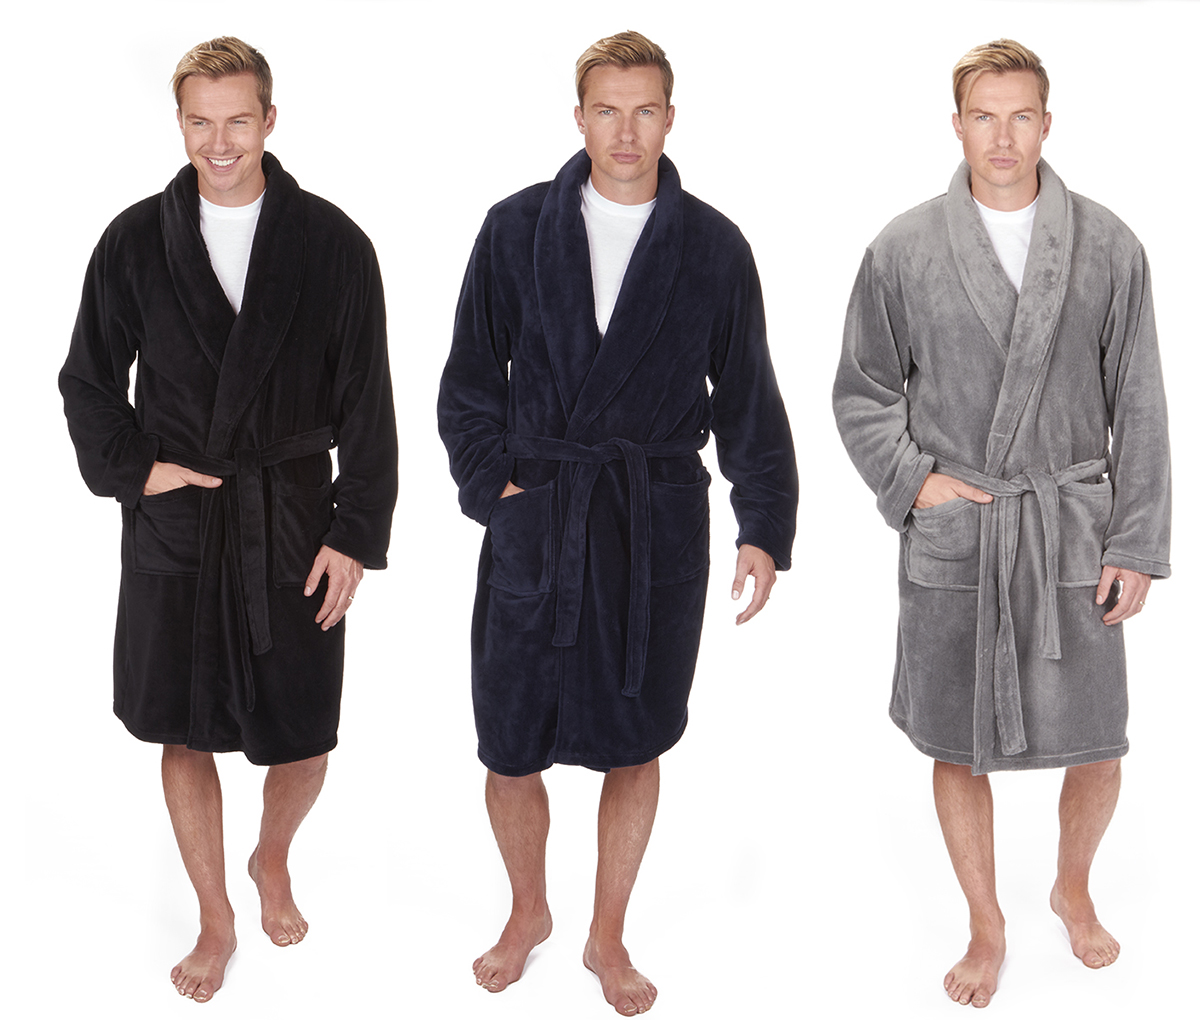 12c0764bb7 PIERRE ROCHE Mens Dressing Gown Bath Robe Soft Warm Coral Fleece Shawl  Collar